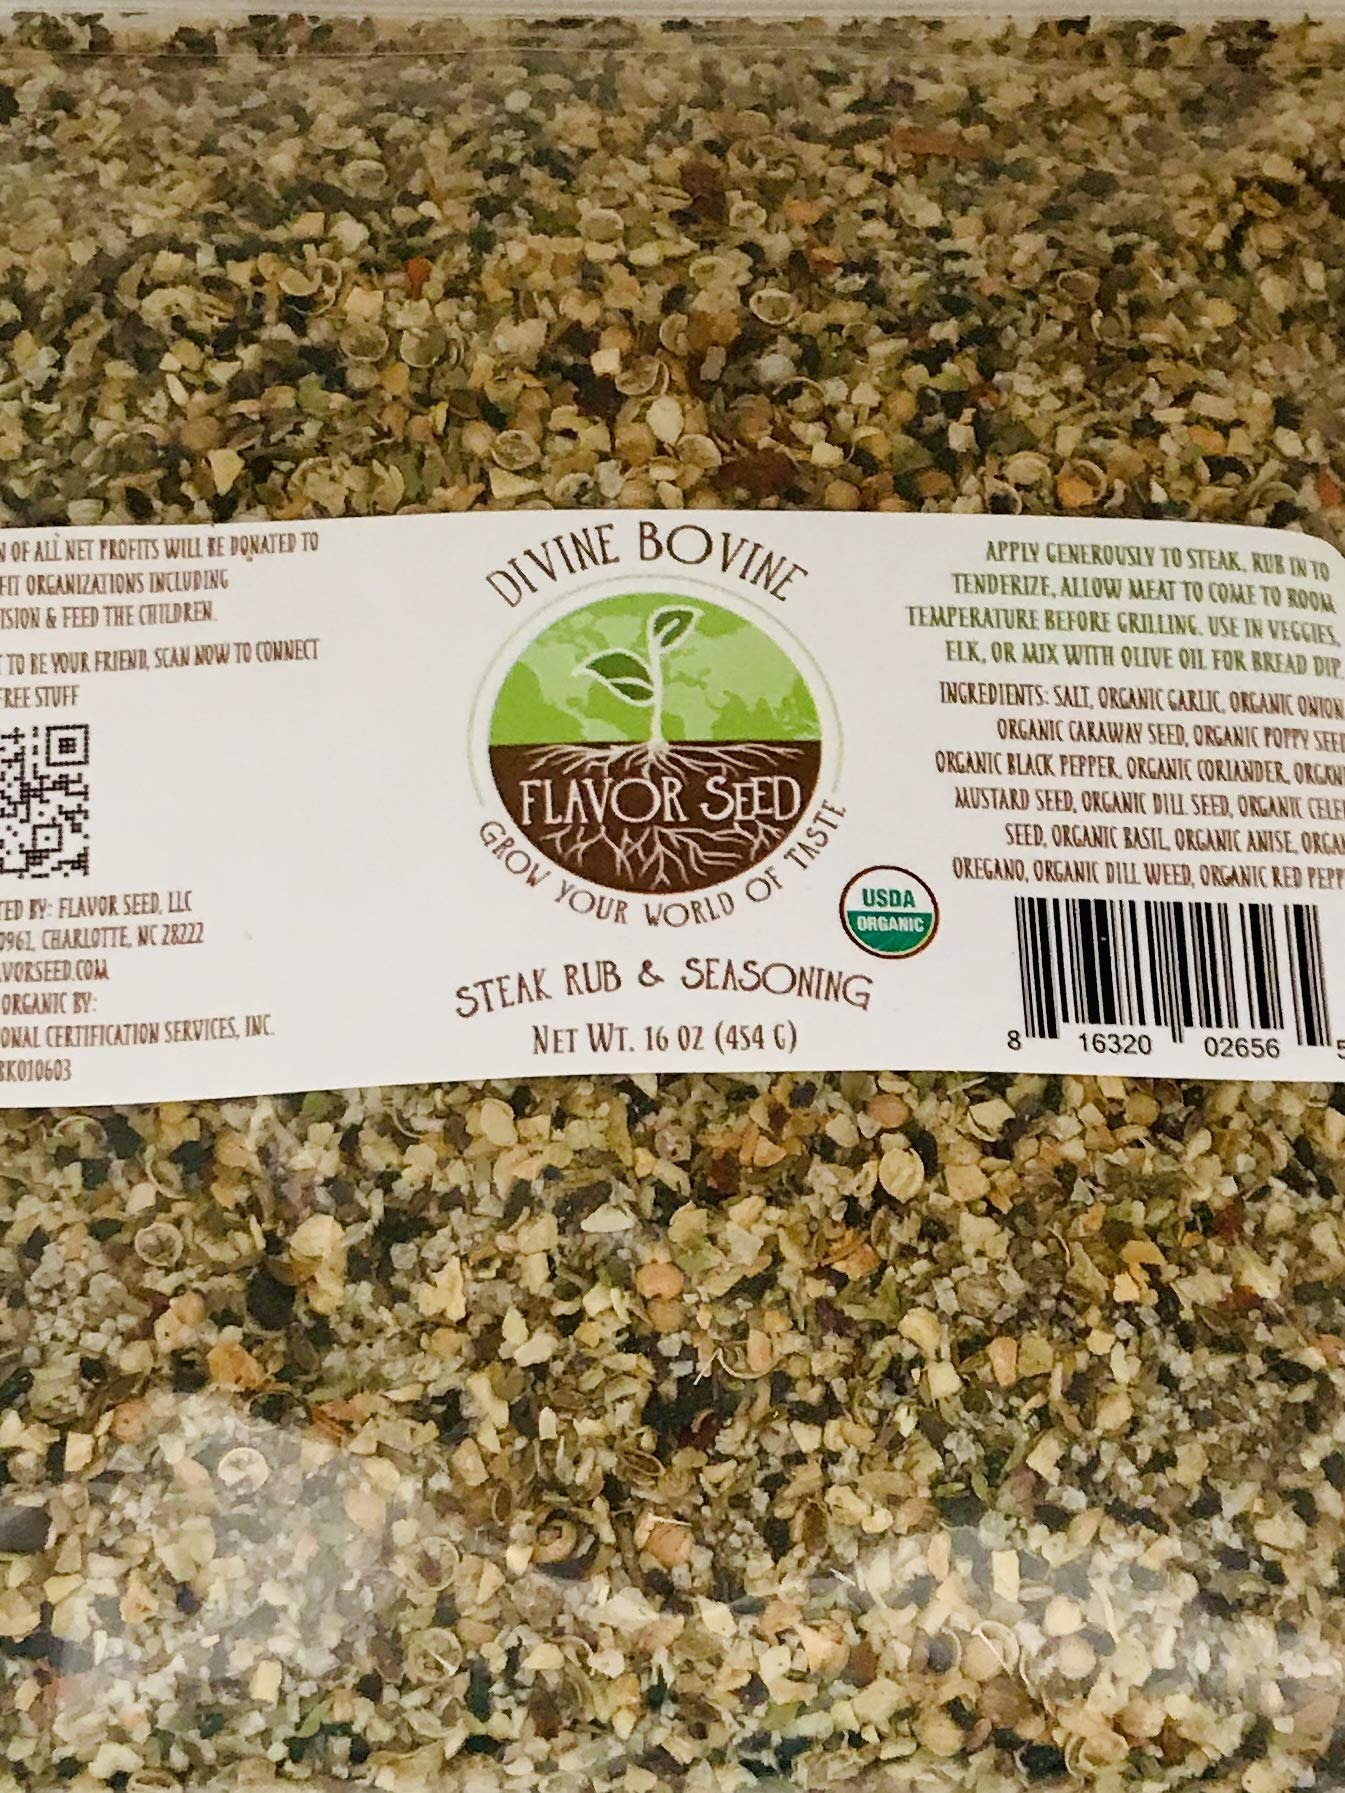 FLAVOR SEED - Divine Bovine Organic Steak Rub and Seasoning Keto, Paleo, Whole 30 approved, Non-GMO, Gluten Free Use on Steak, Chicken, Vegetables Olive Oil Dip, Montreal Steak meets Everything Bagel